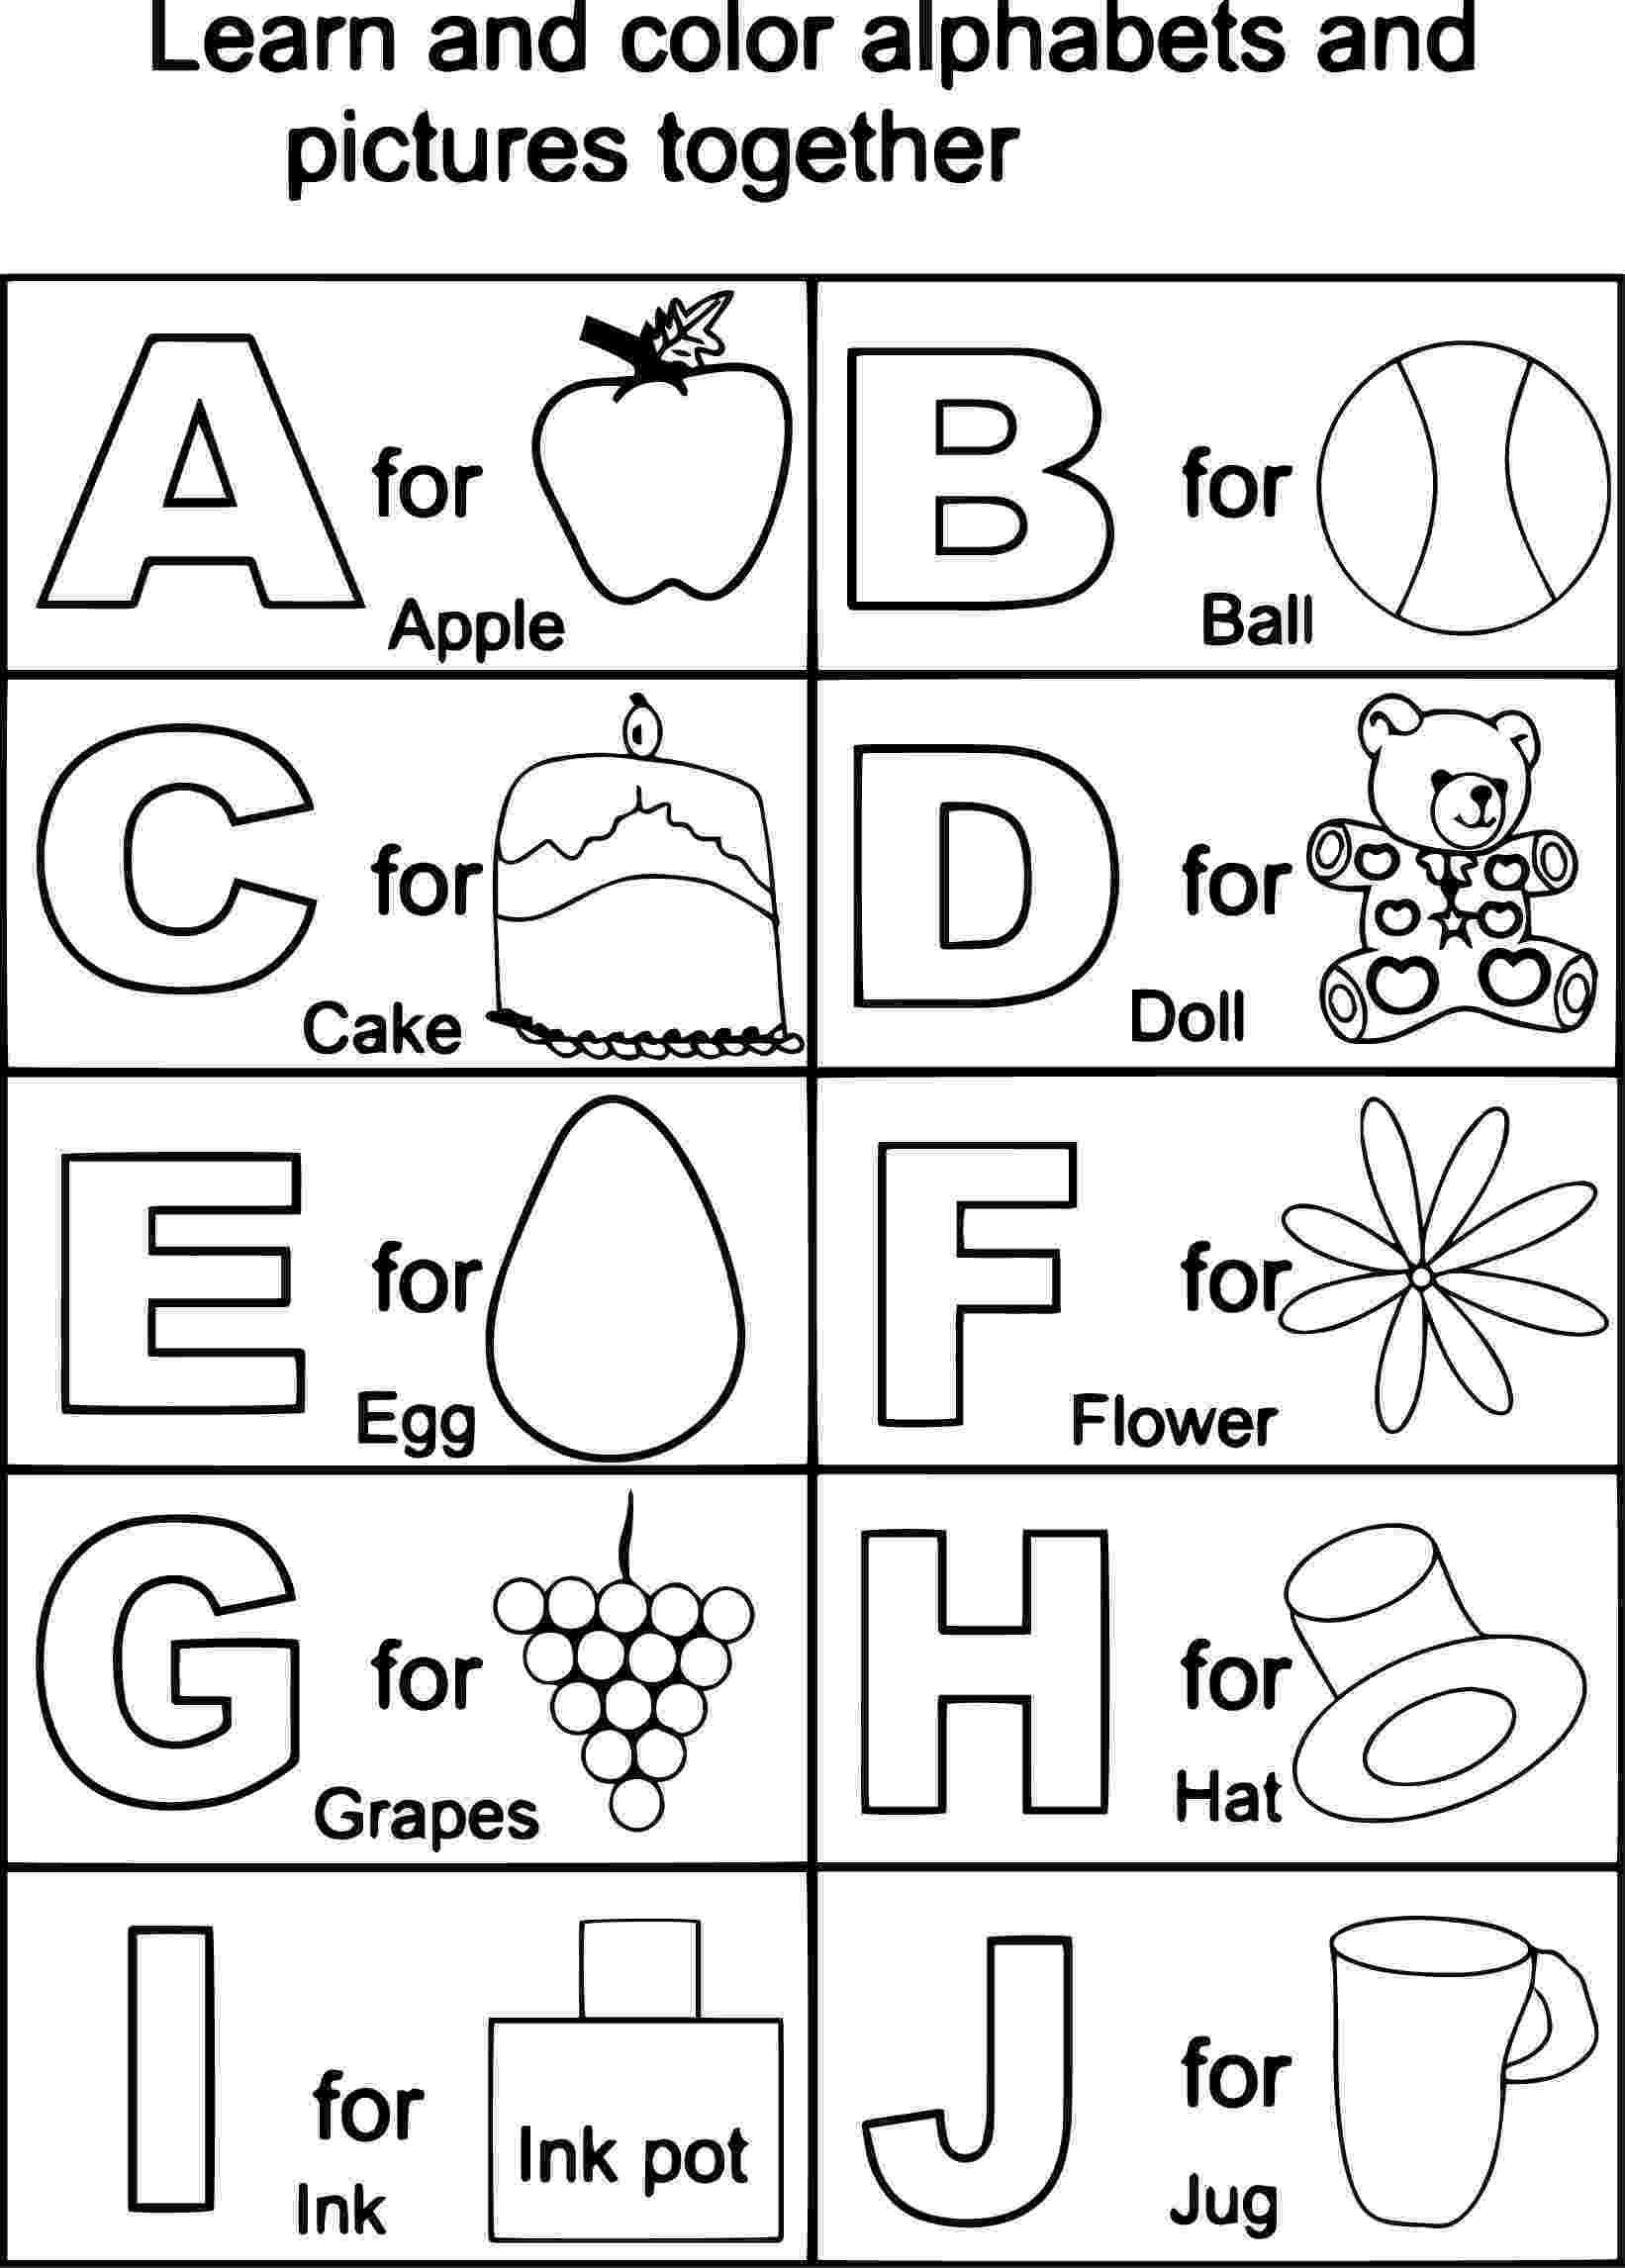 abc coloring book printable free printable alphabet coloring pages for kids best coloring book abc printable